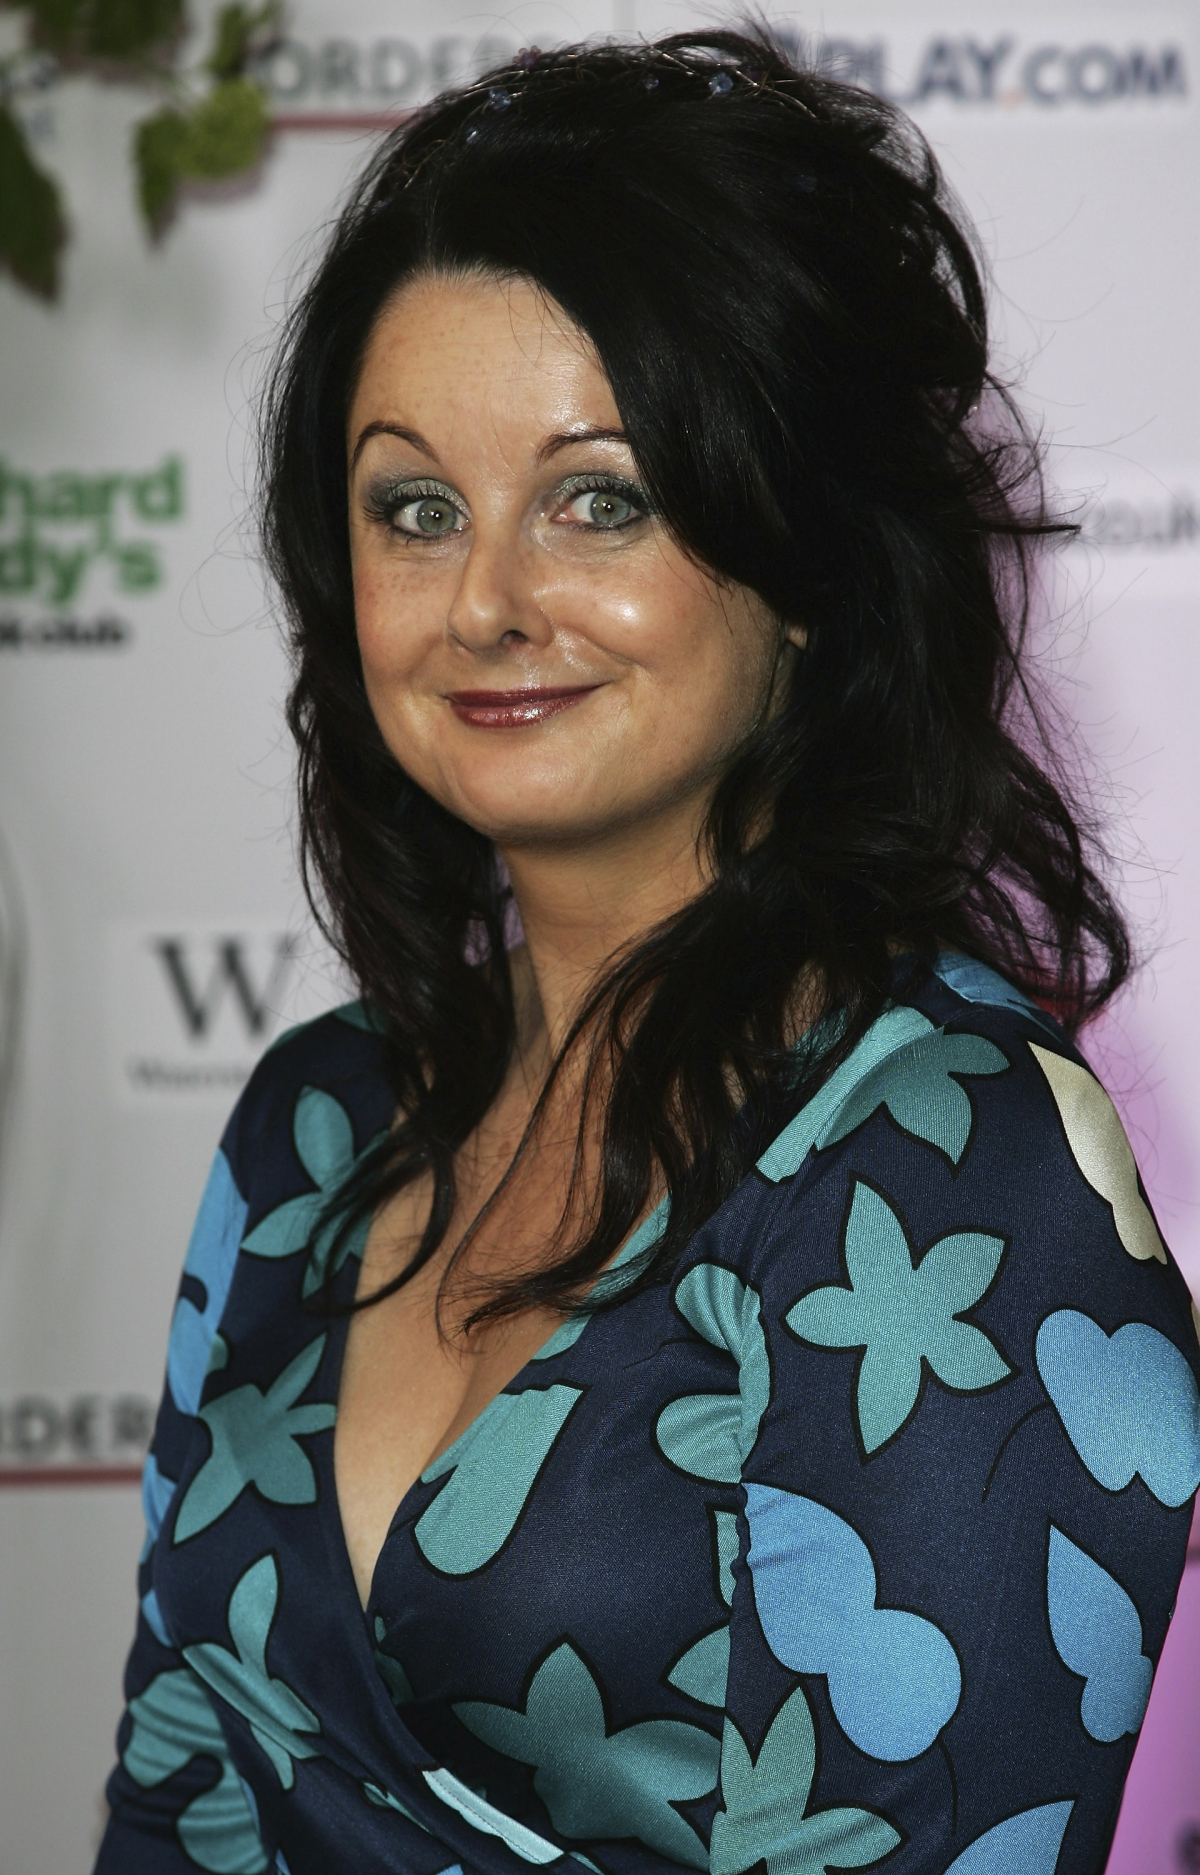 Marian Keyes risked life from laser